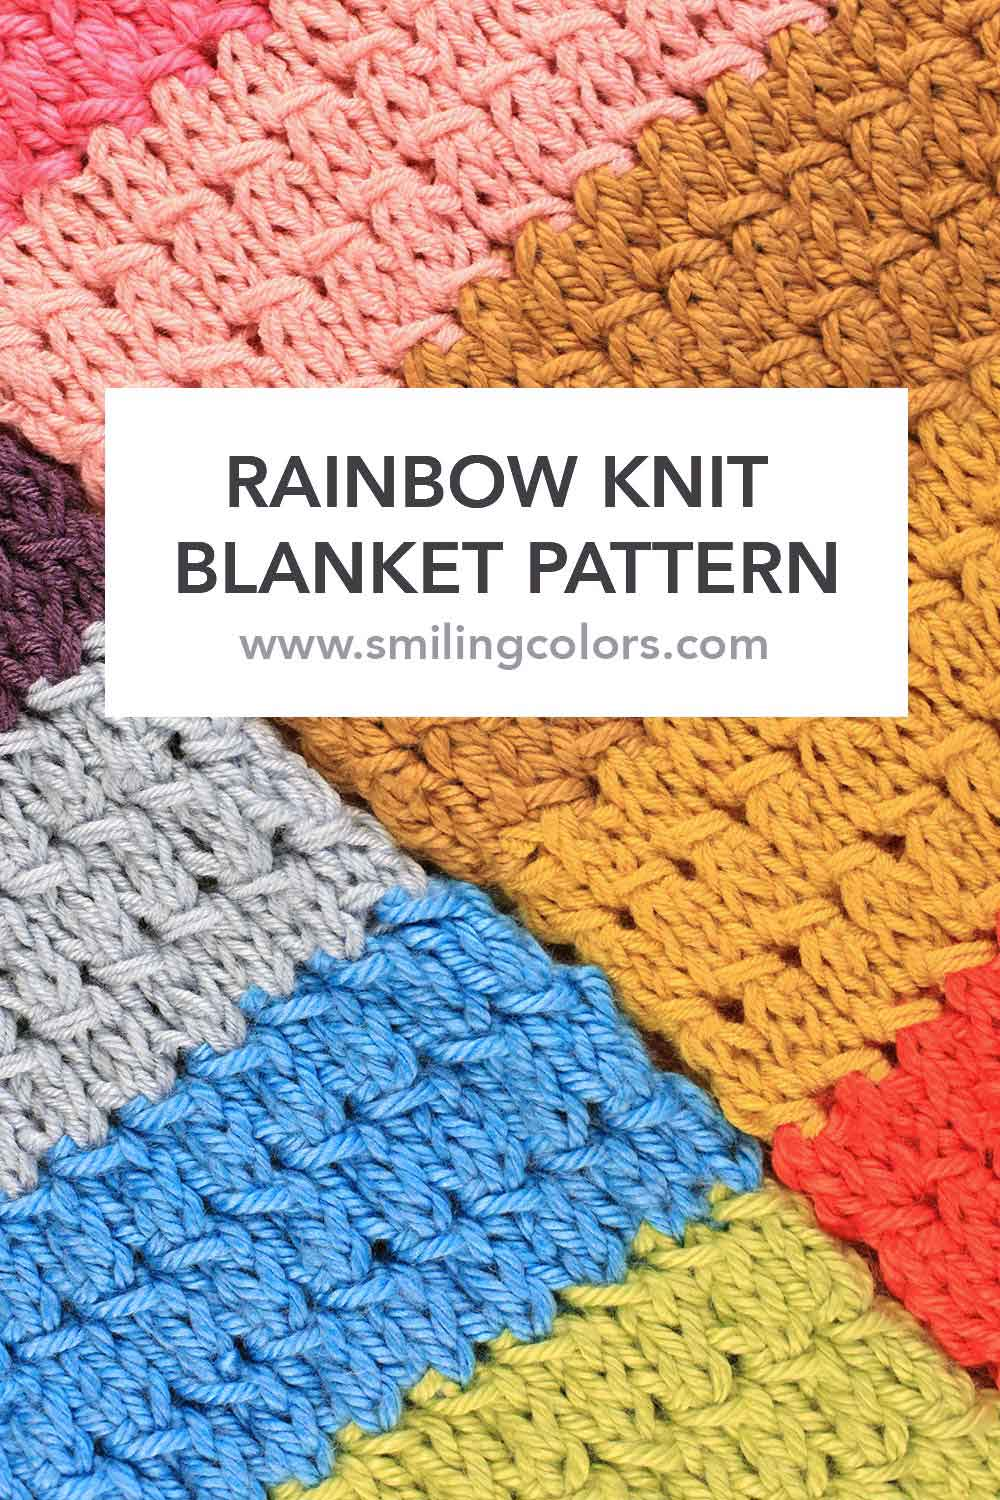 Rainbow Knit Blanket pattern with an YouTube video too!